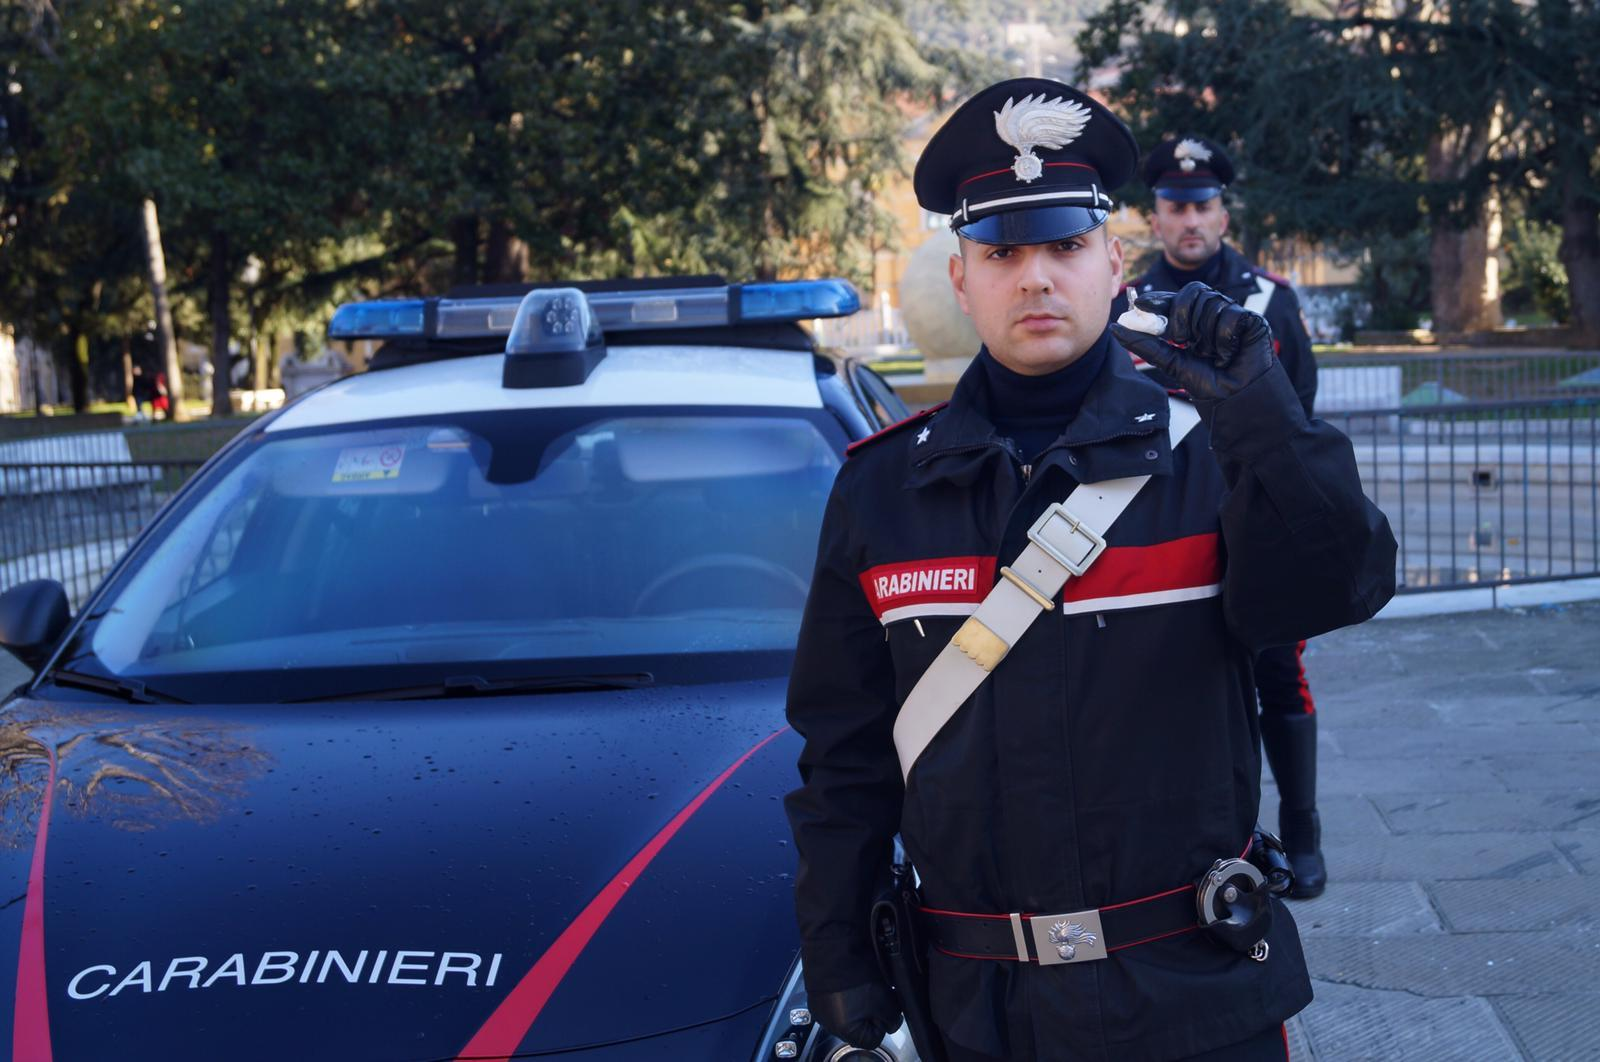 Spaccia cocaina, arrestato richiedente asilo